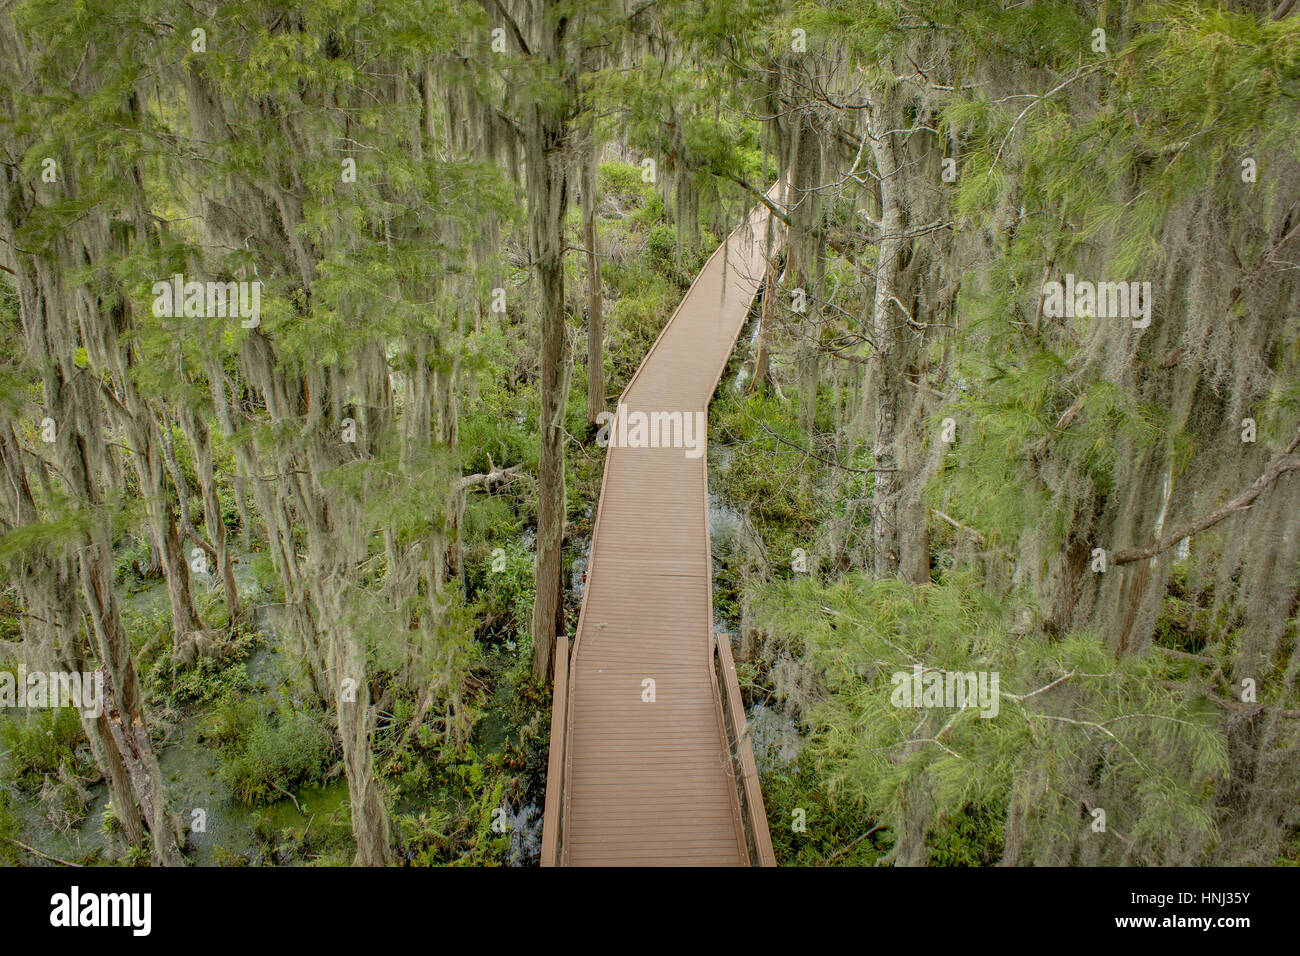 Spanish Moss Trees over the Boardwalk in the Okefenokee Swamp. - Stock Image